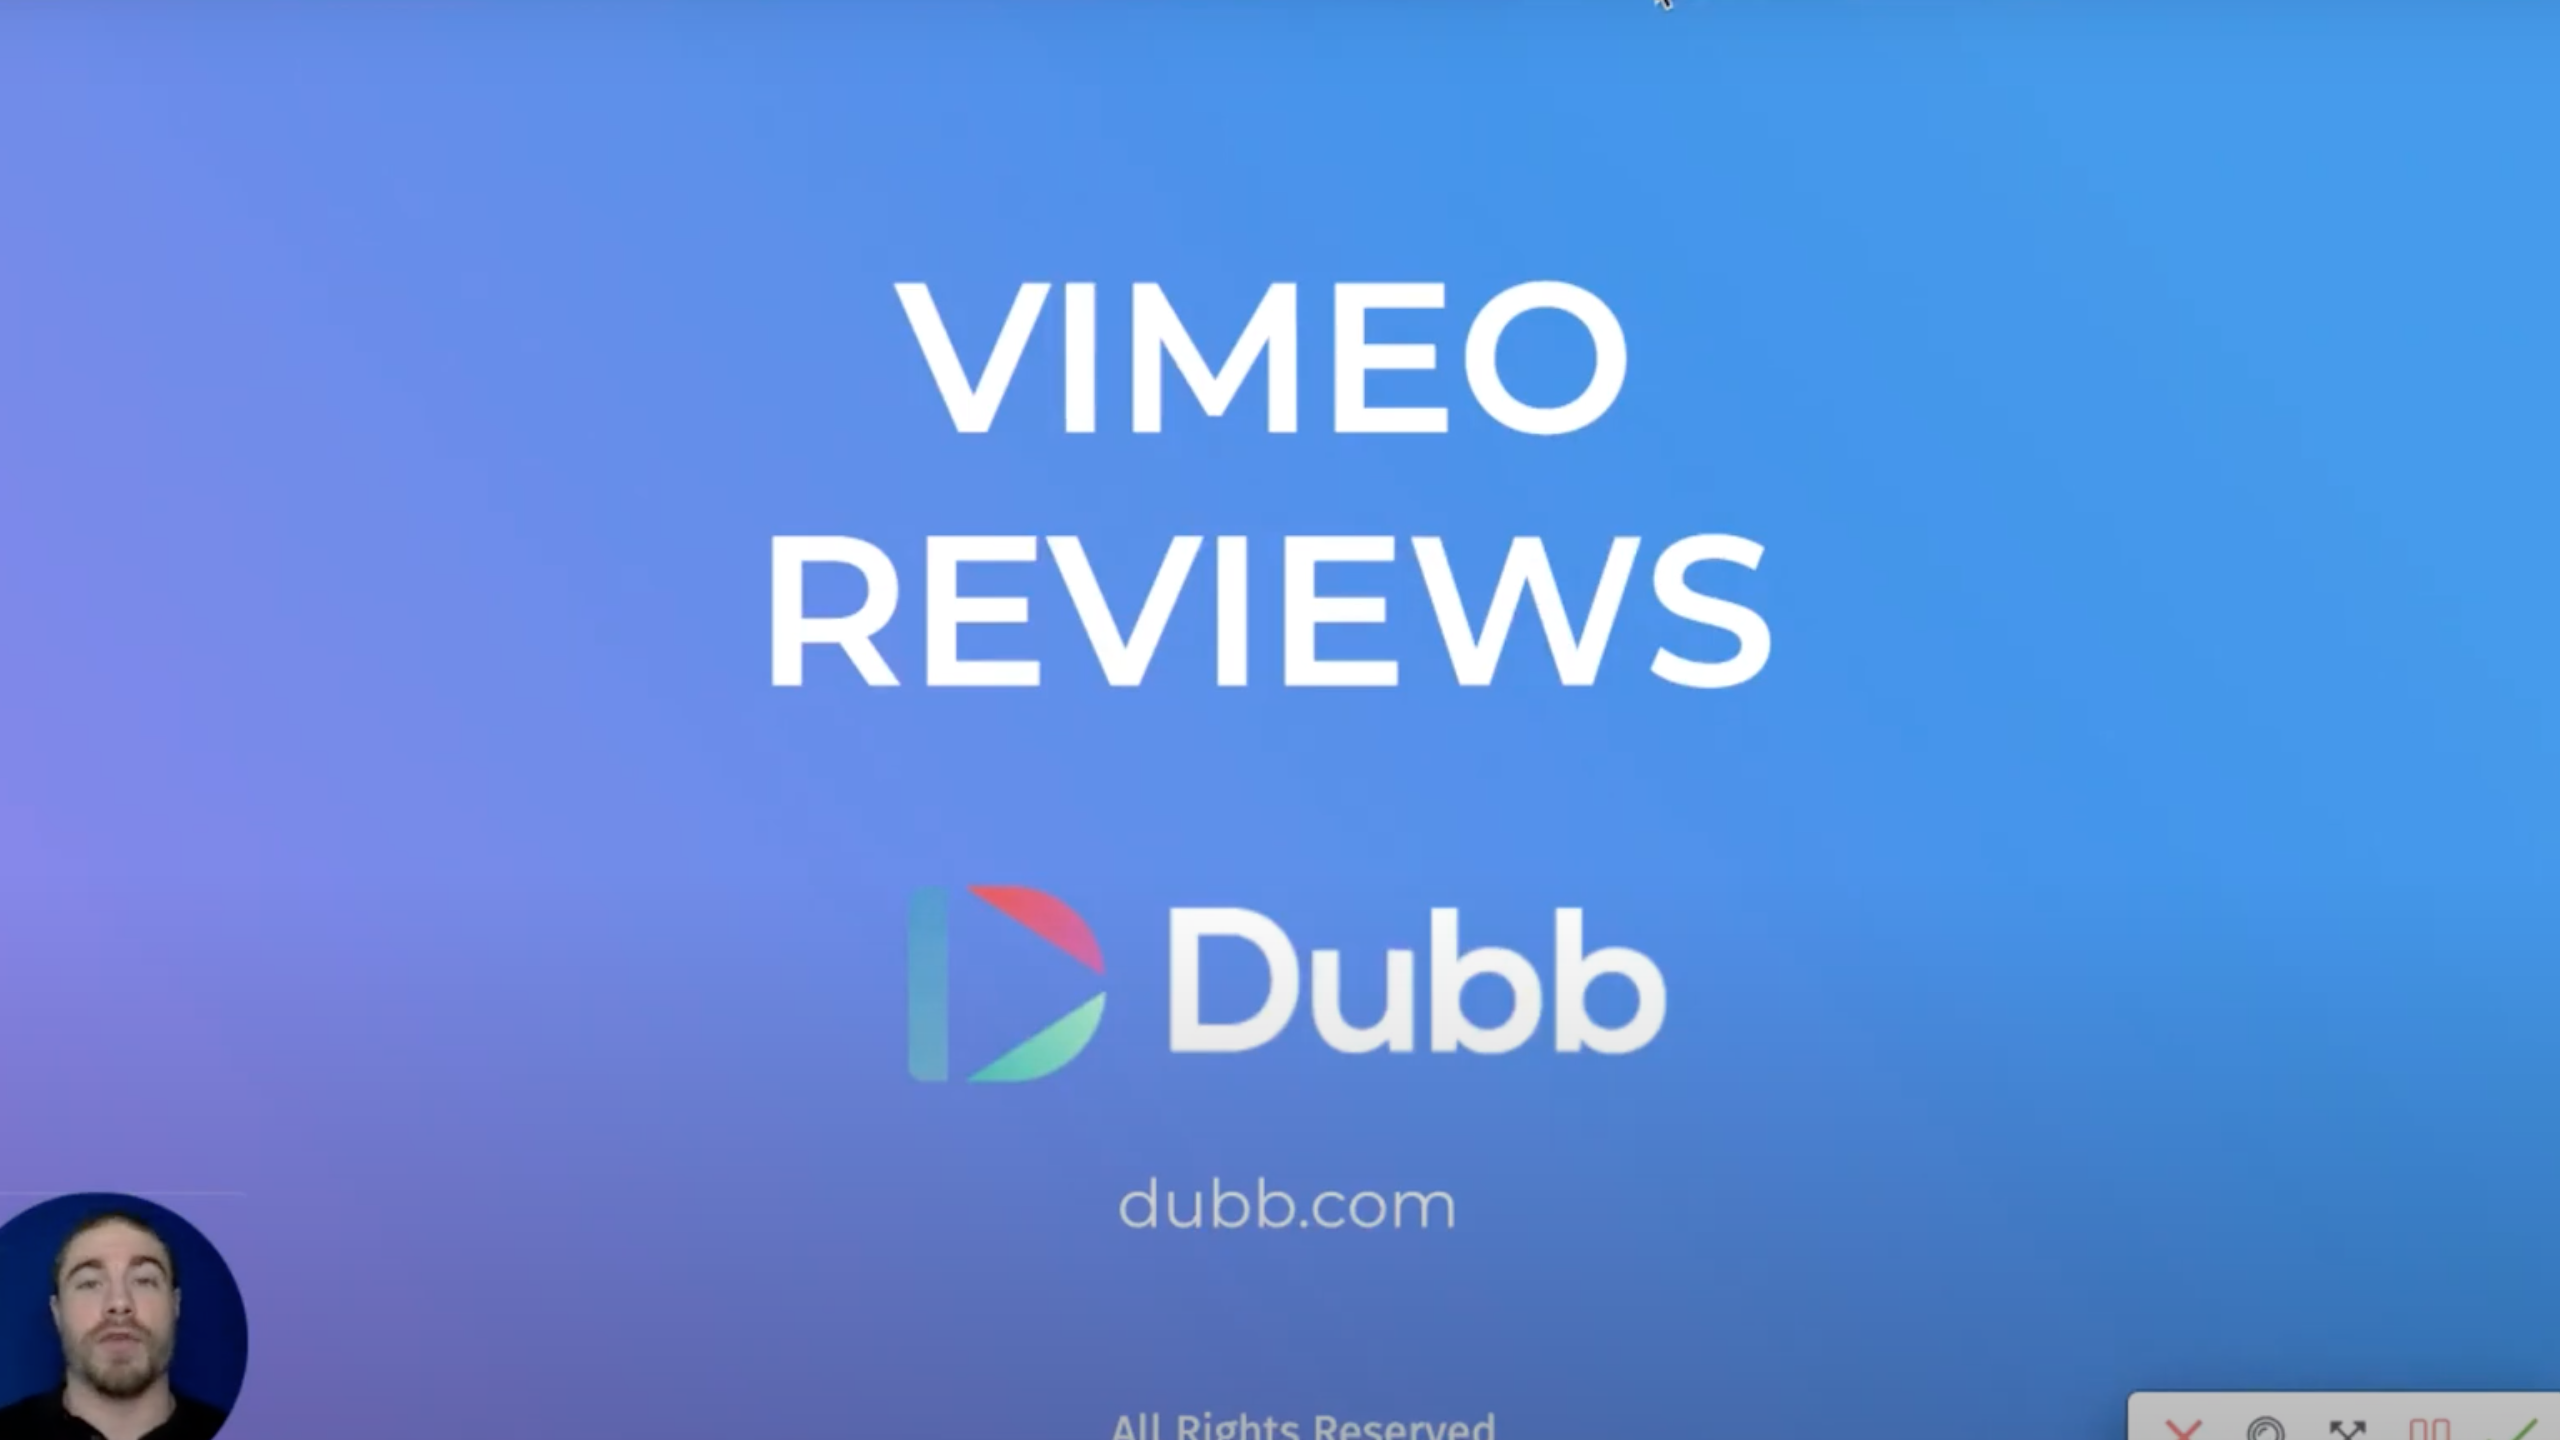 Vimeo Reviews